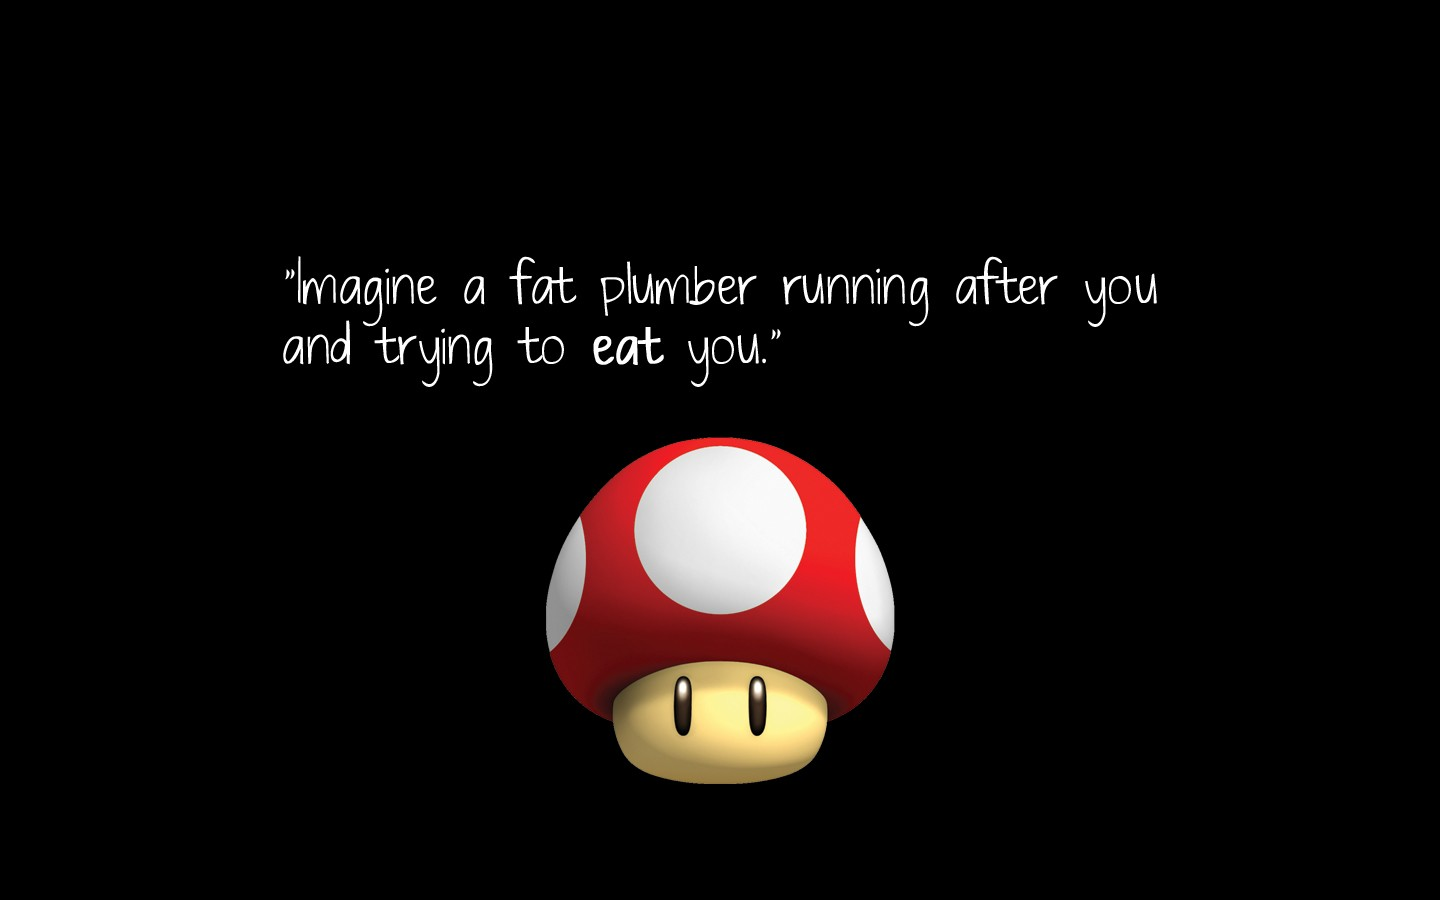 funny mario wallpaper - sf wallpaper